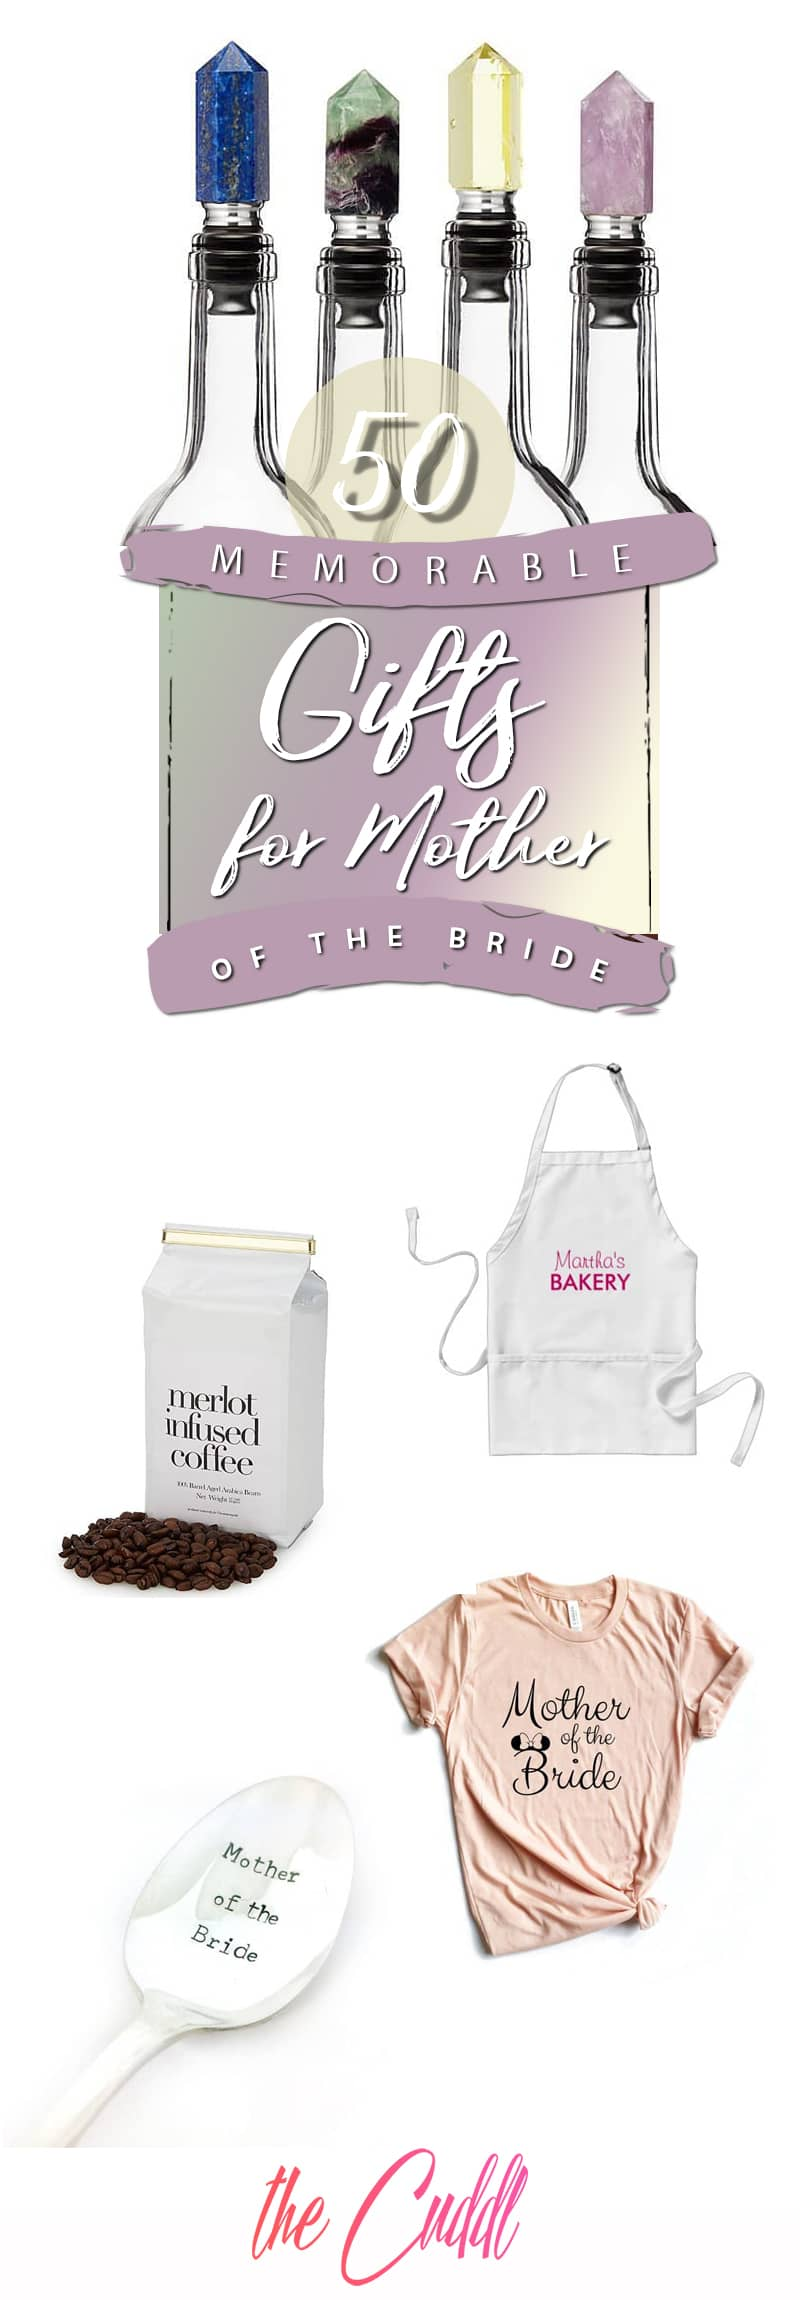 50 Memorable Mother Of The Bride Gifts To Make Her Feel